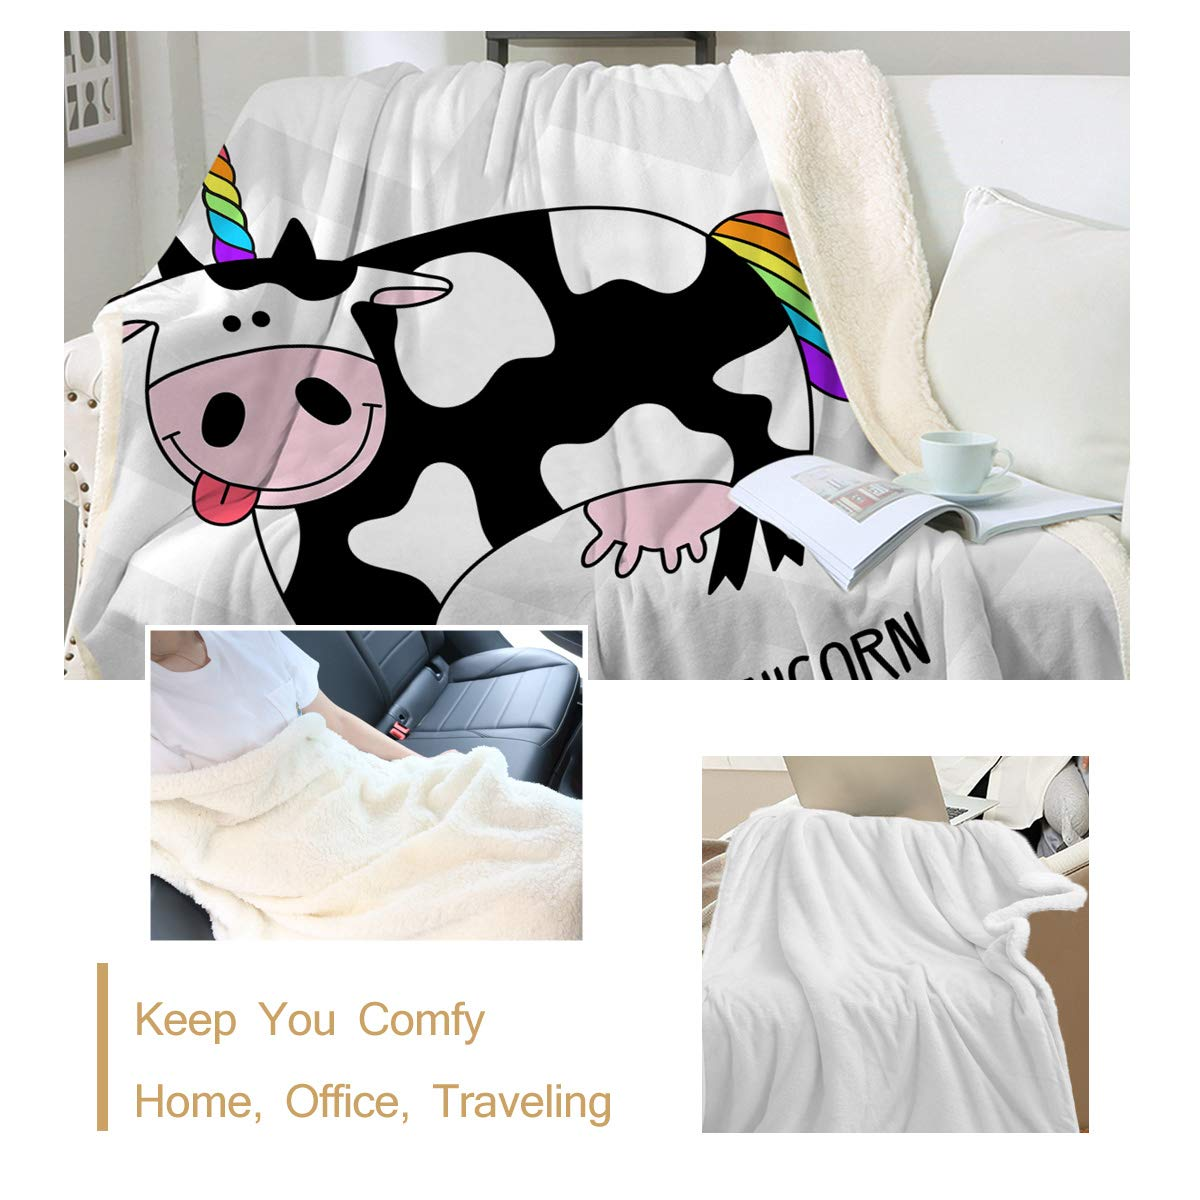 Black and White Cow Pattern Sleepwish Baby Plush Blanket Cozy Fleece with Sherpa Backing Woodland Forest Animals Print 30 x 40 Super Soft Lightweight and Fuzzy